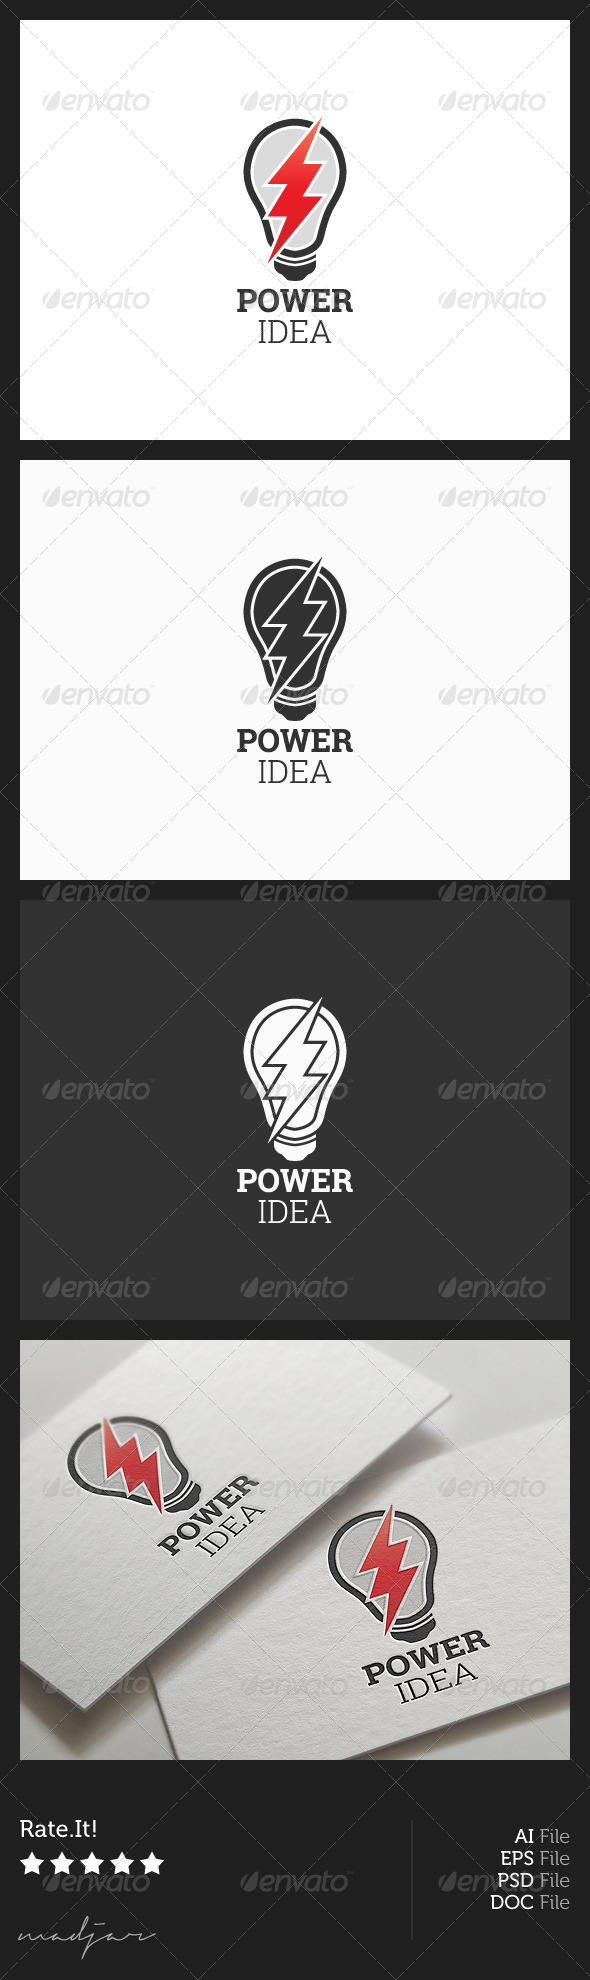 Power Idea Logo - Symbols Logo Templates